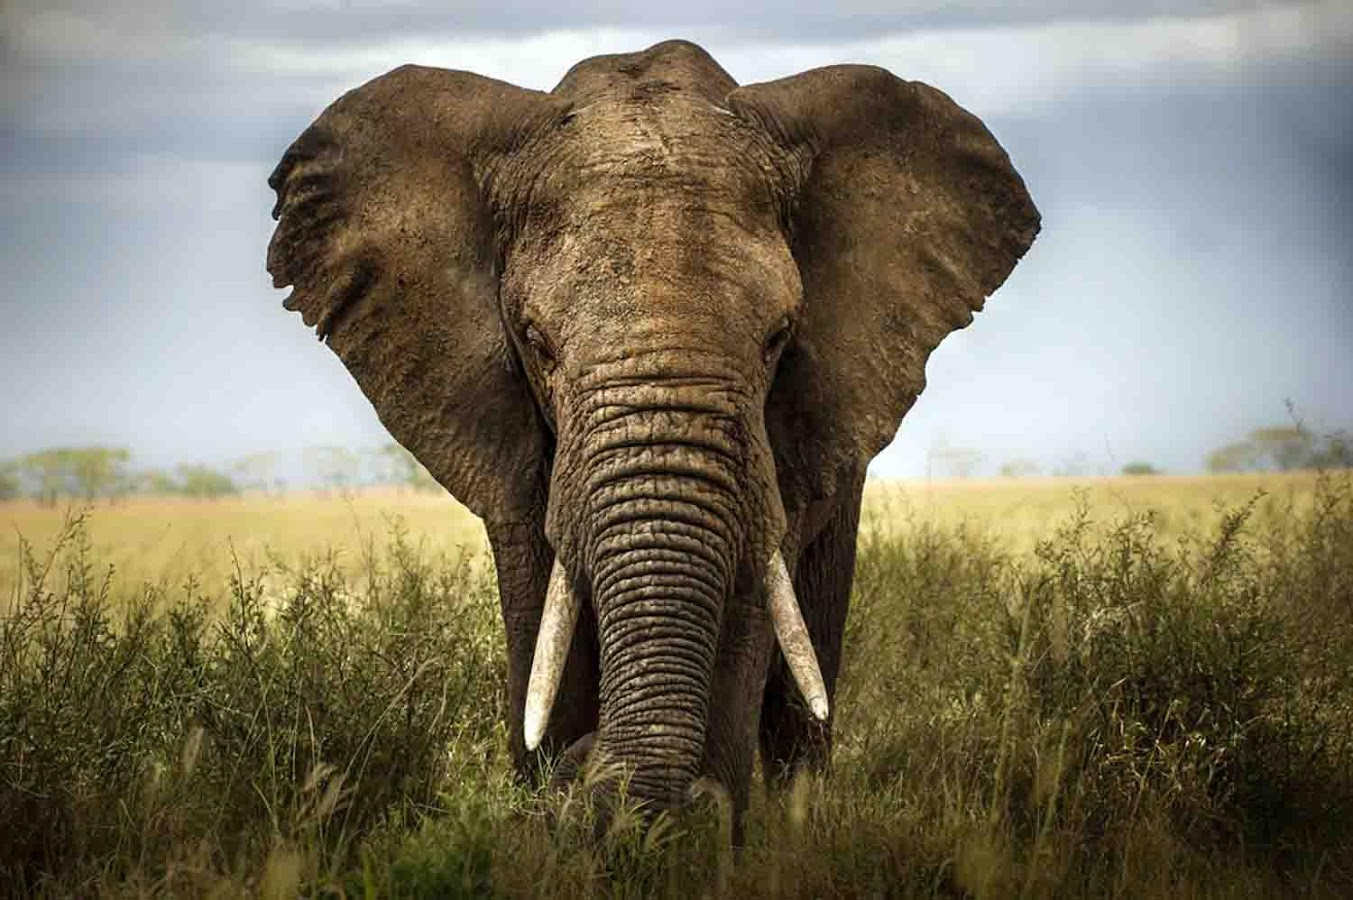 Free Elephant Wallpaper Android Apps on Google Play